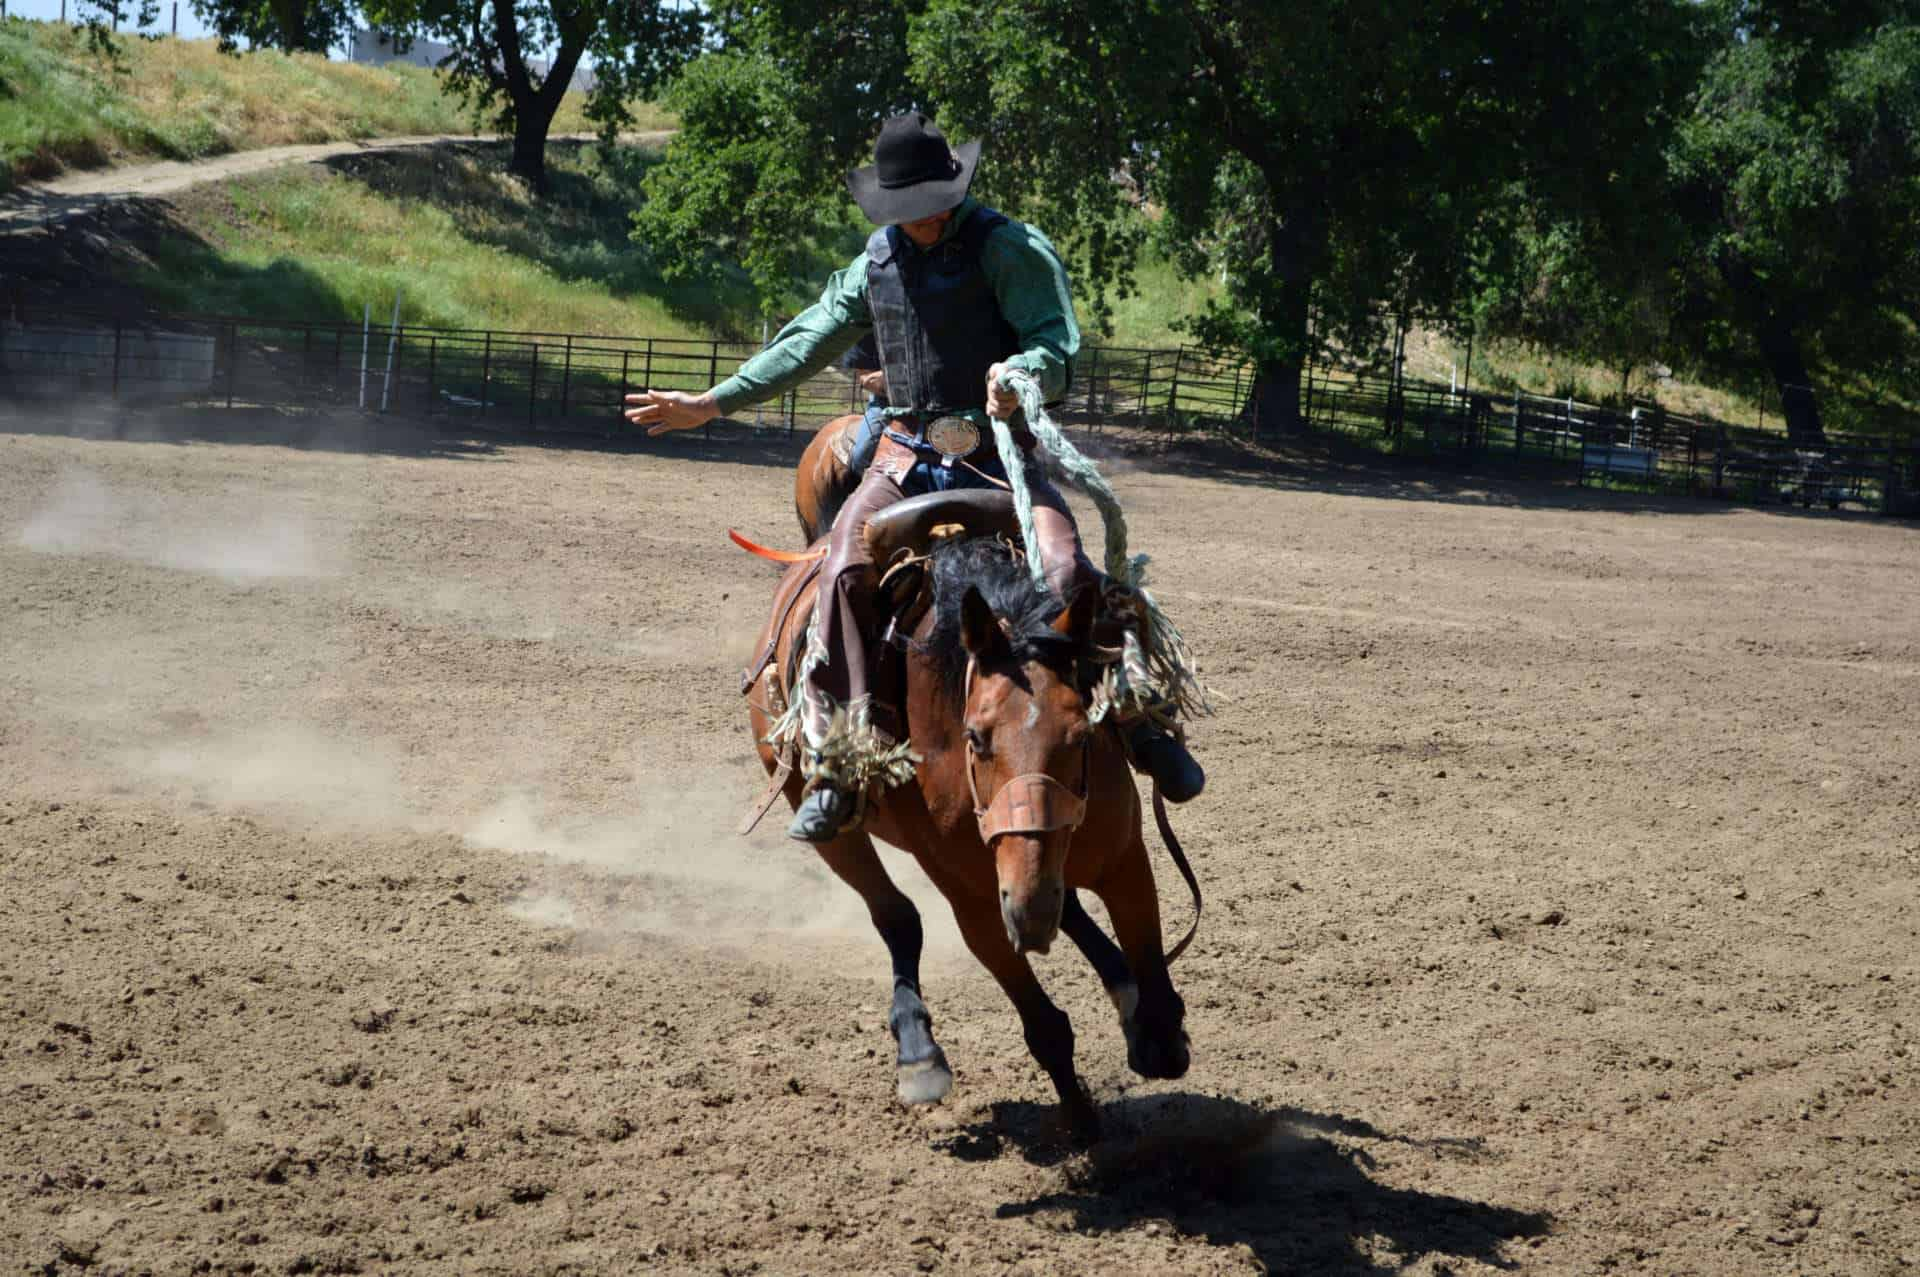 cowboy-on-horse-at-rodeo